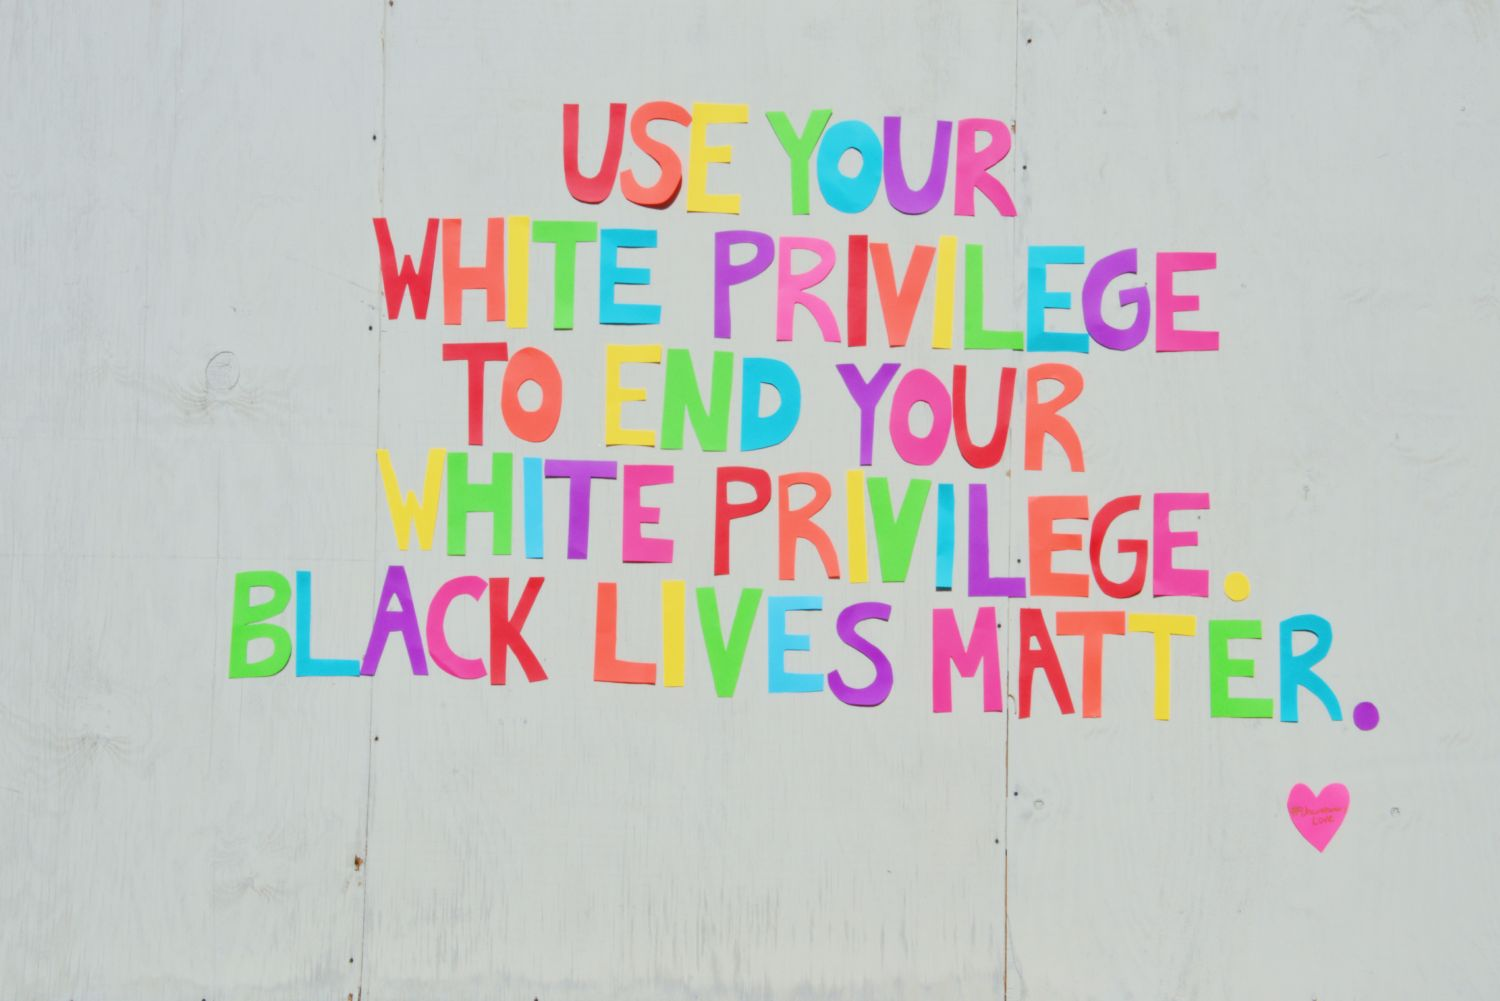 How To Use Your White Privilege To End Your White Privilege | Uncustomary